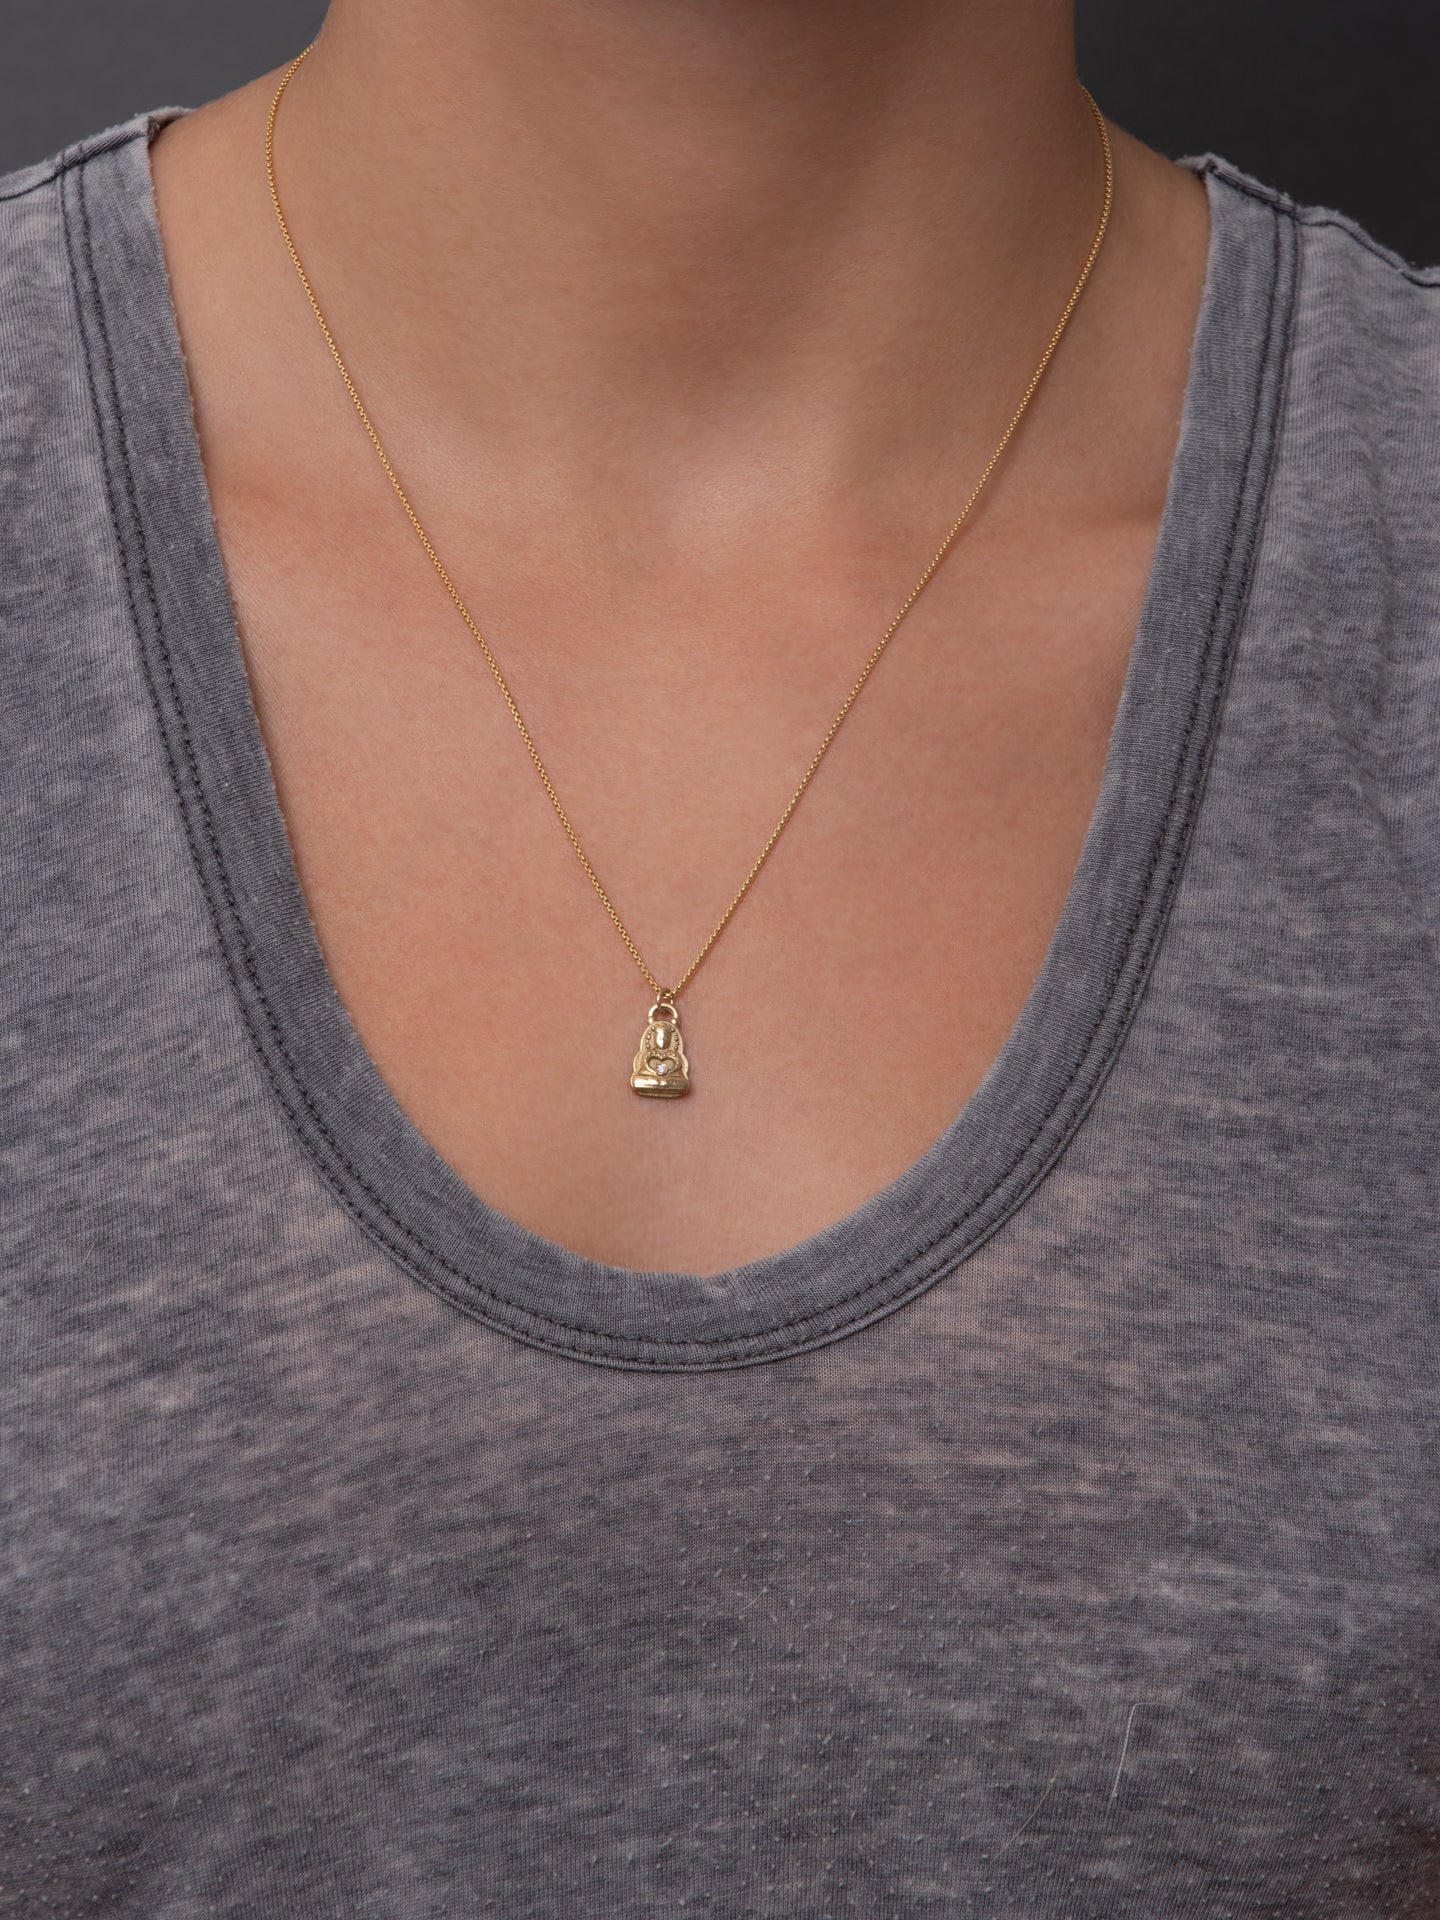 "Tara Necklace ""be good company"""